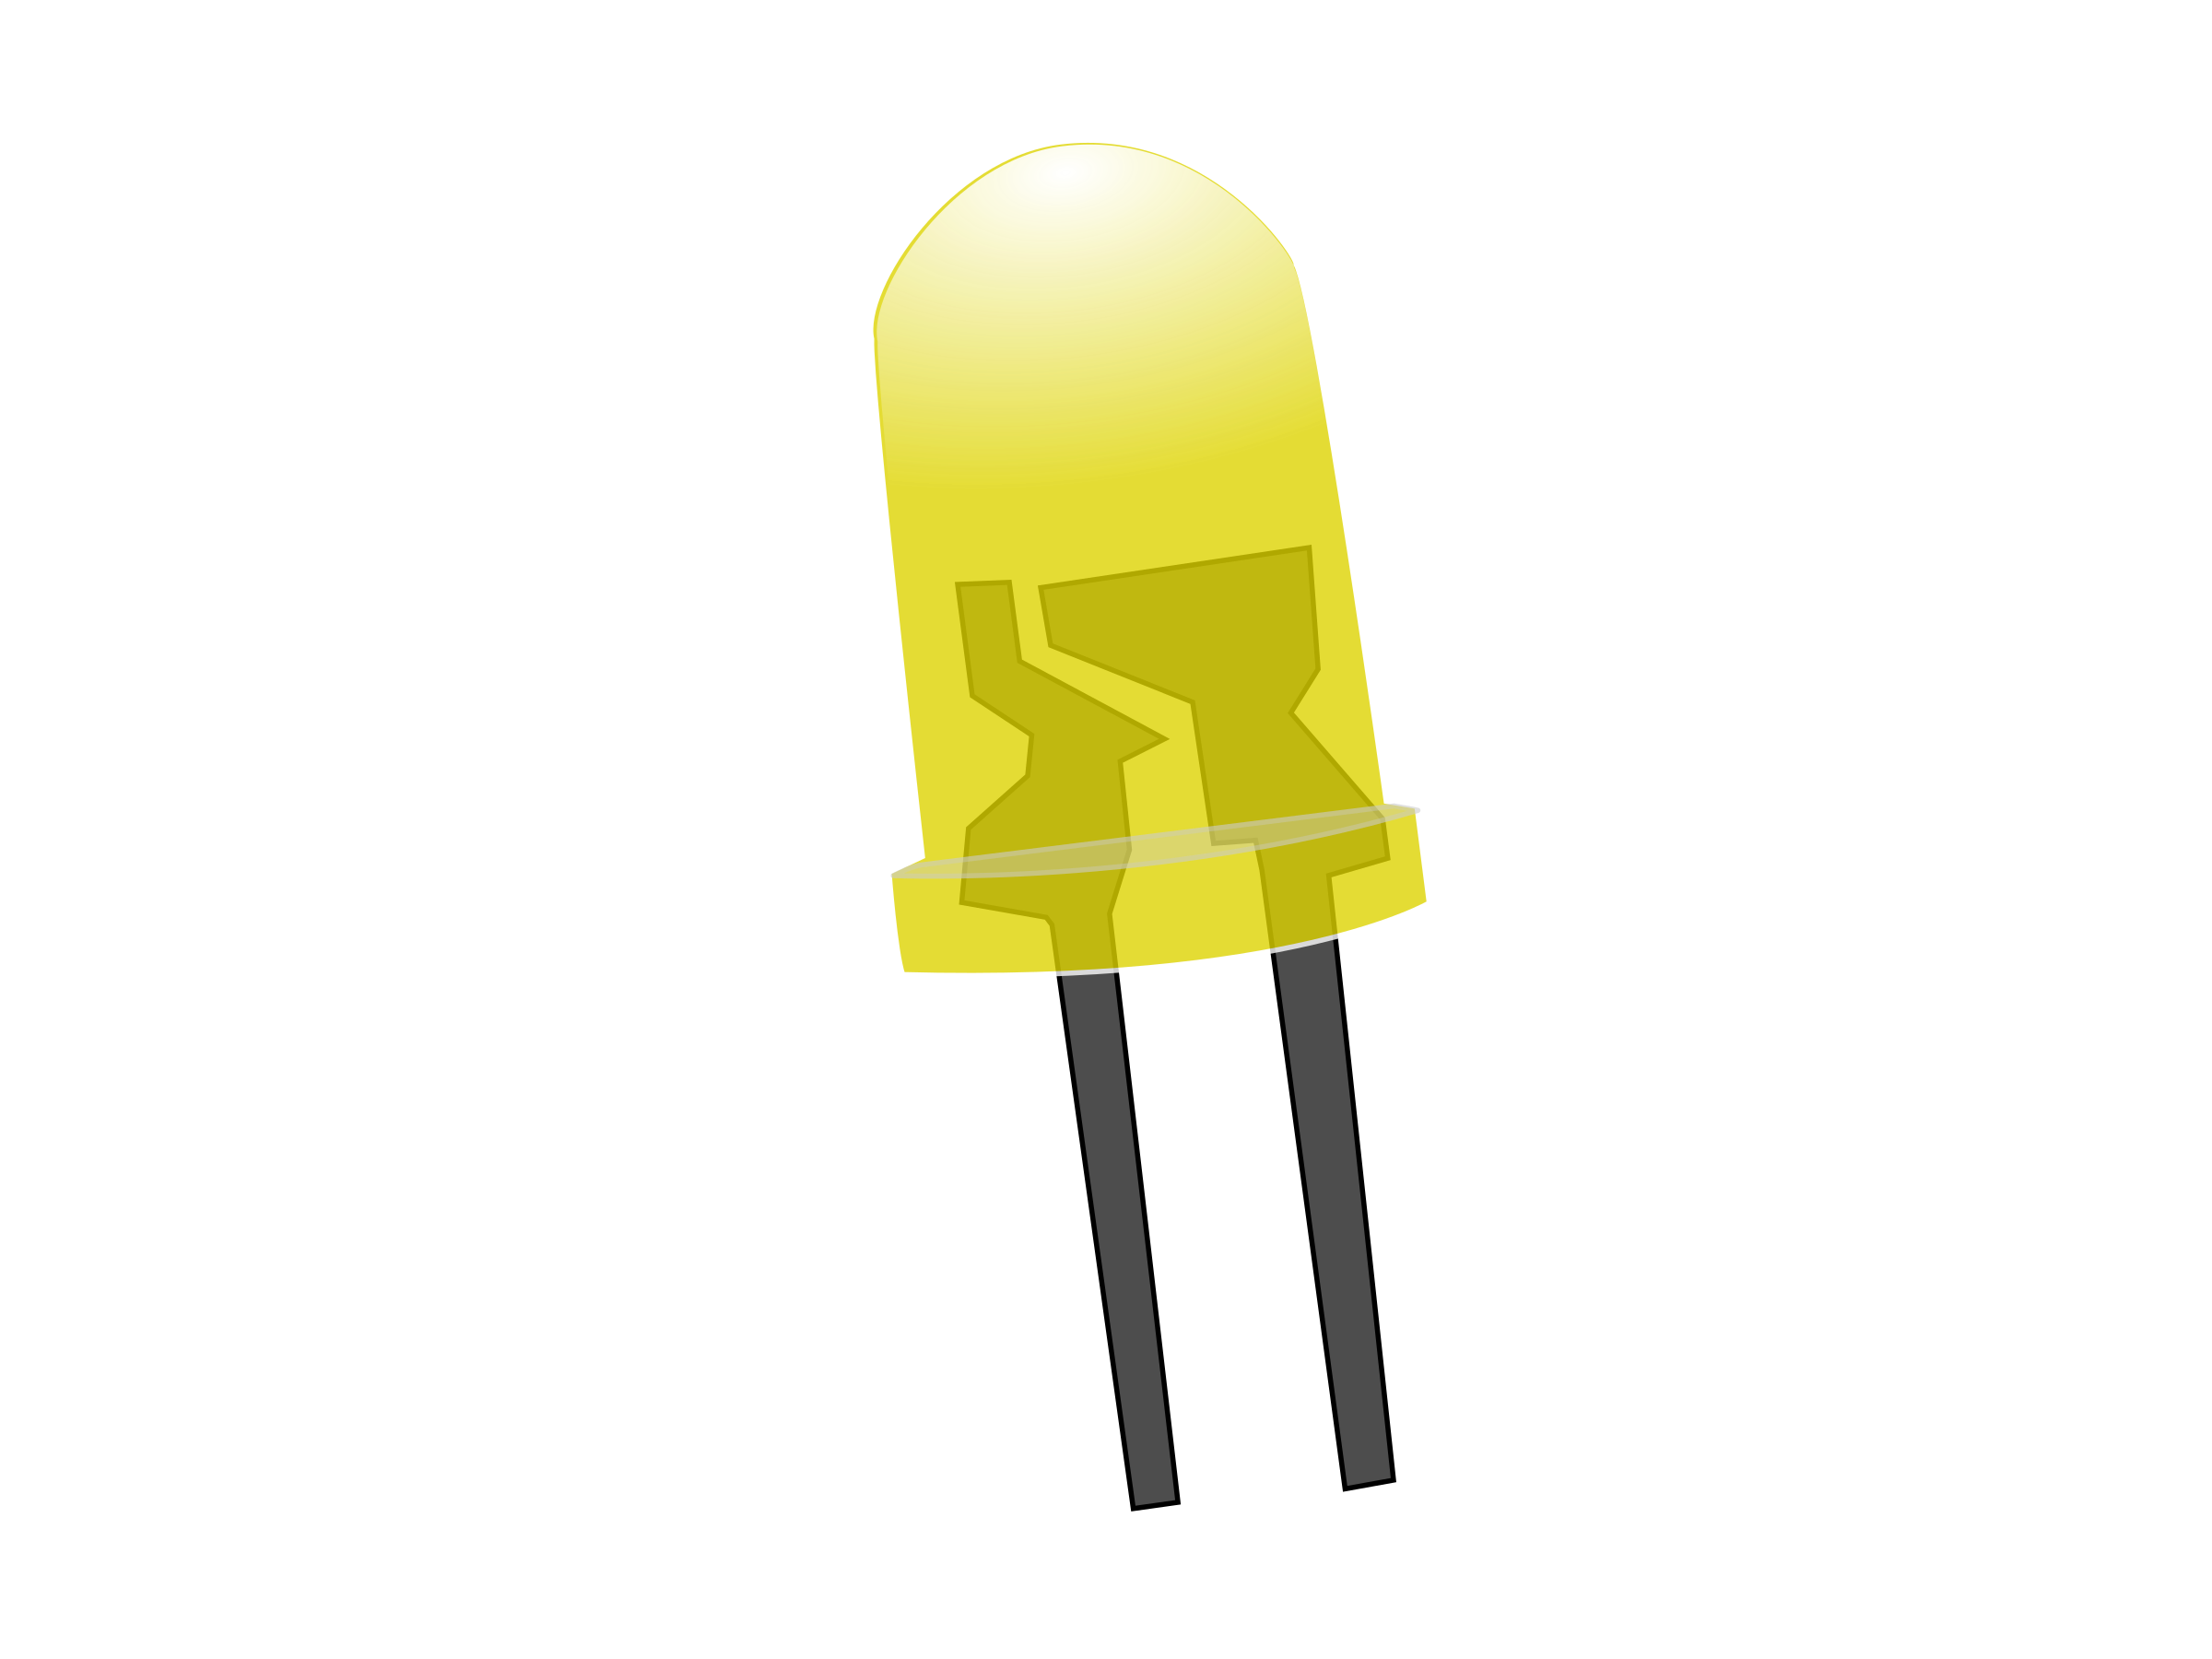 Yellow LED Lamp (Off) by howardthegeek